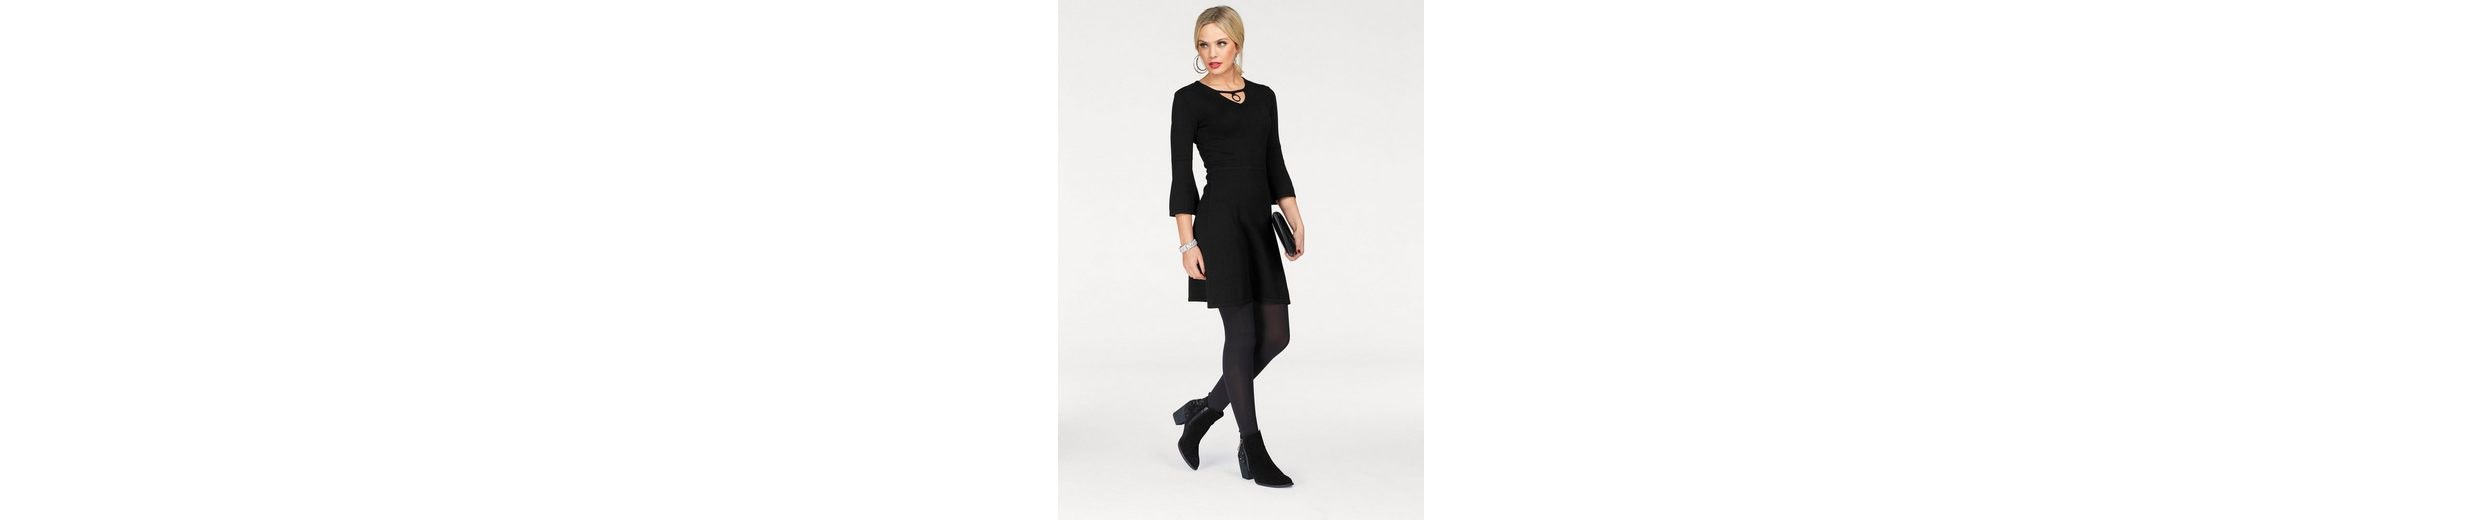 Strickkleid Melrose Strickkleid Strickkleid Strickkleid Melrose Melrose Melrose UO6q4zw